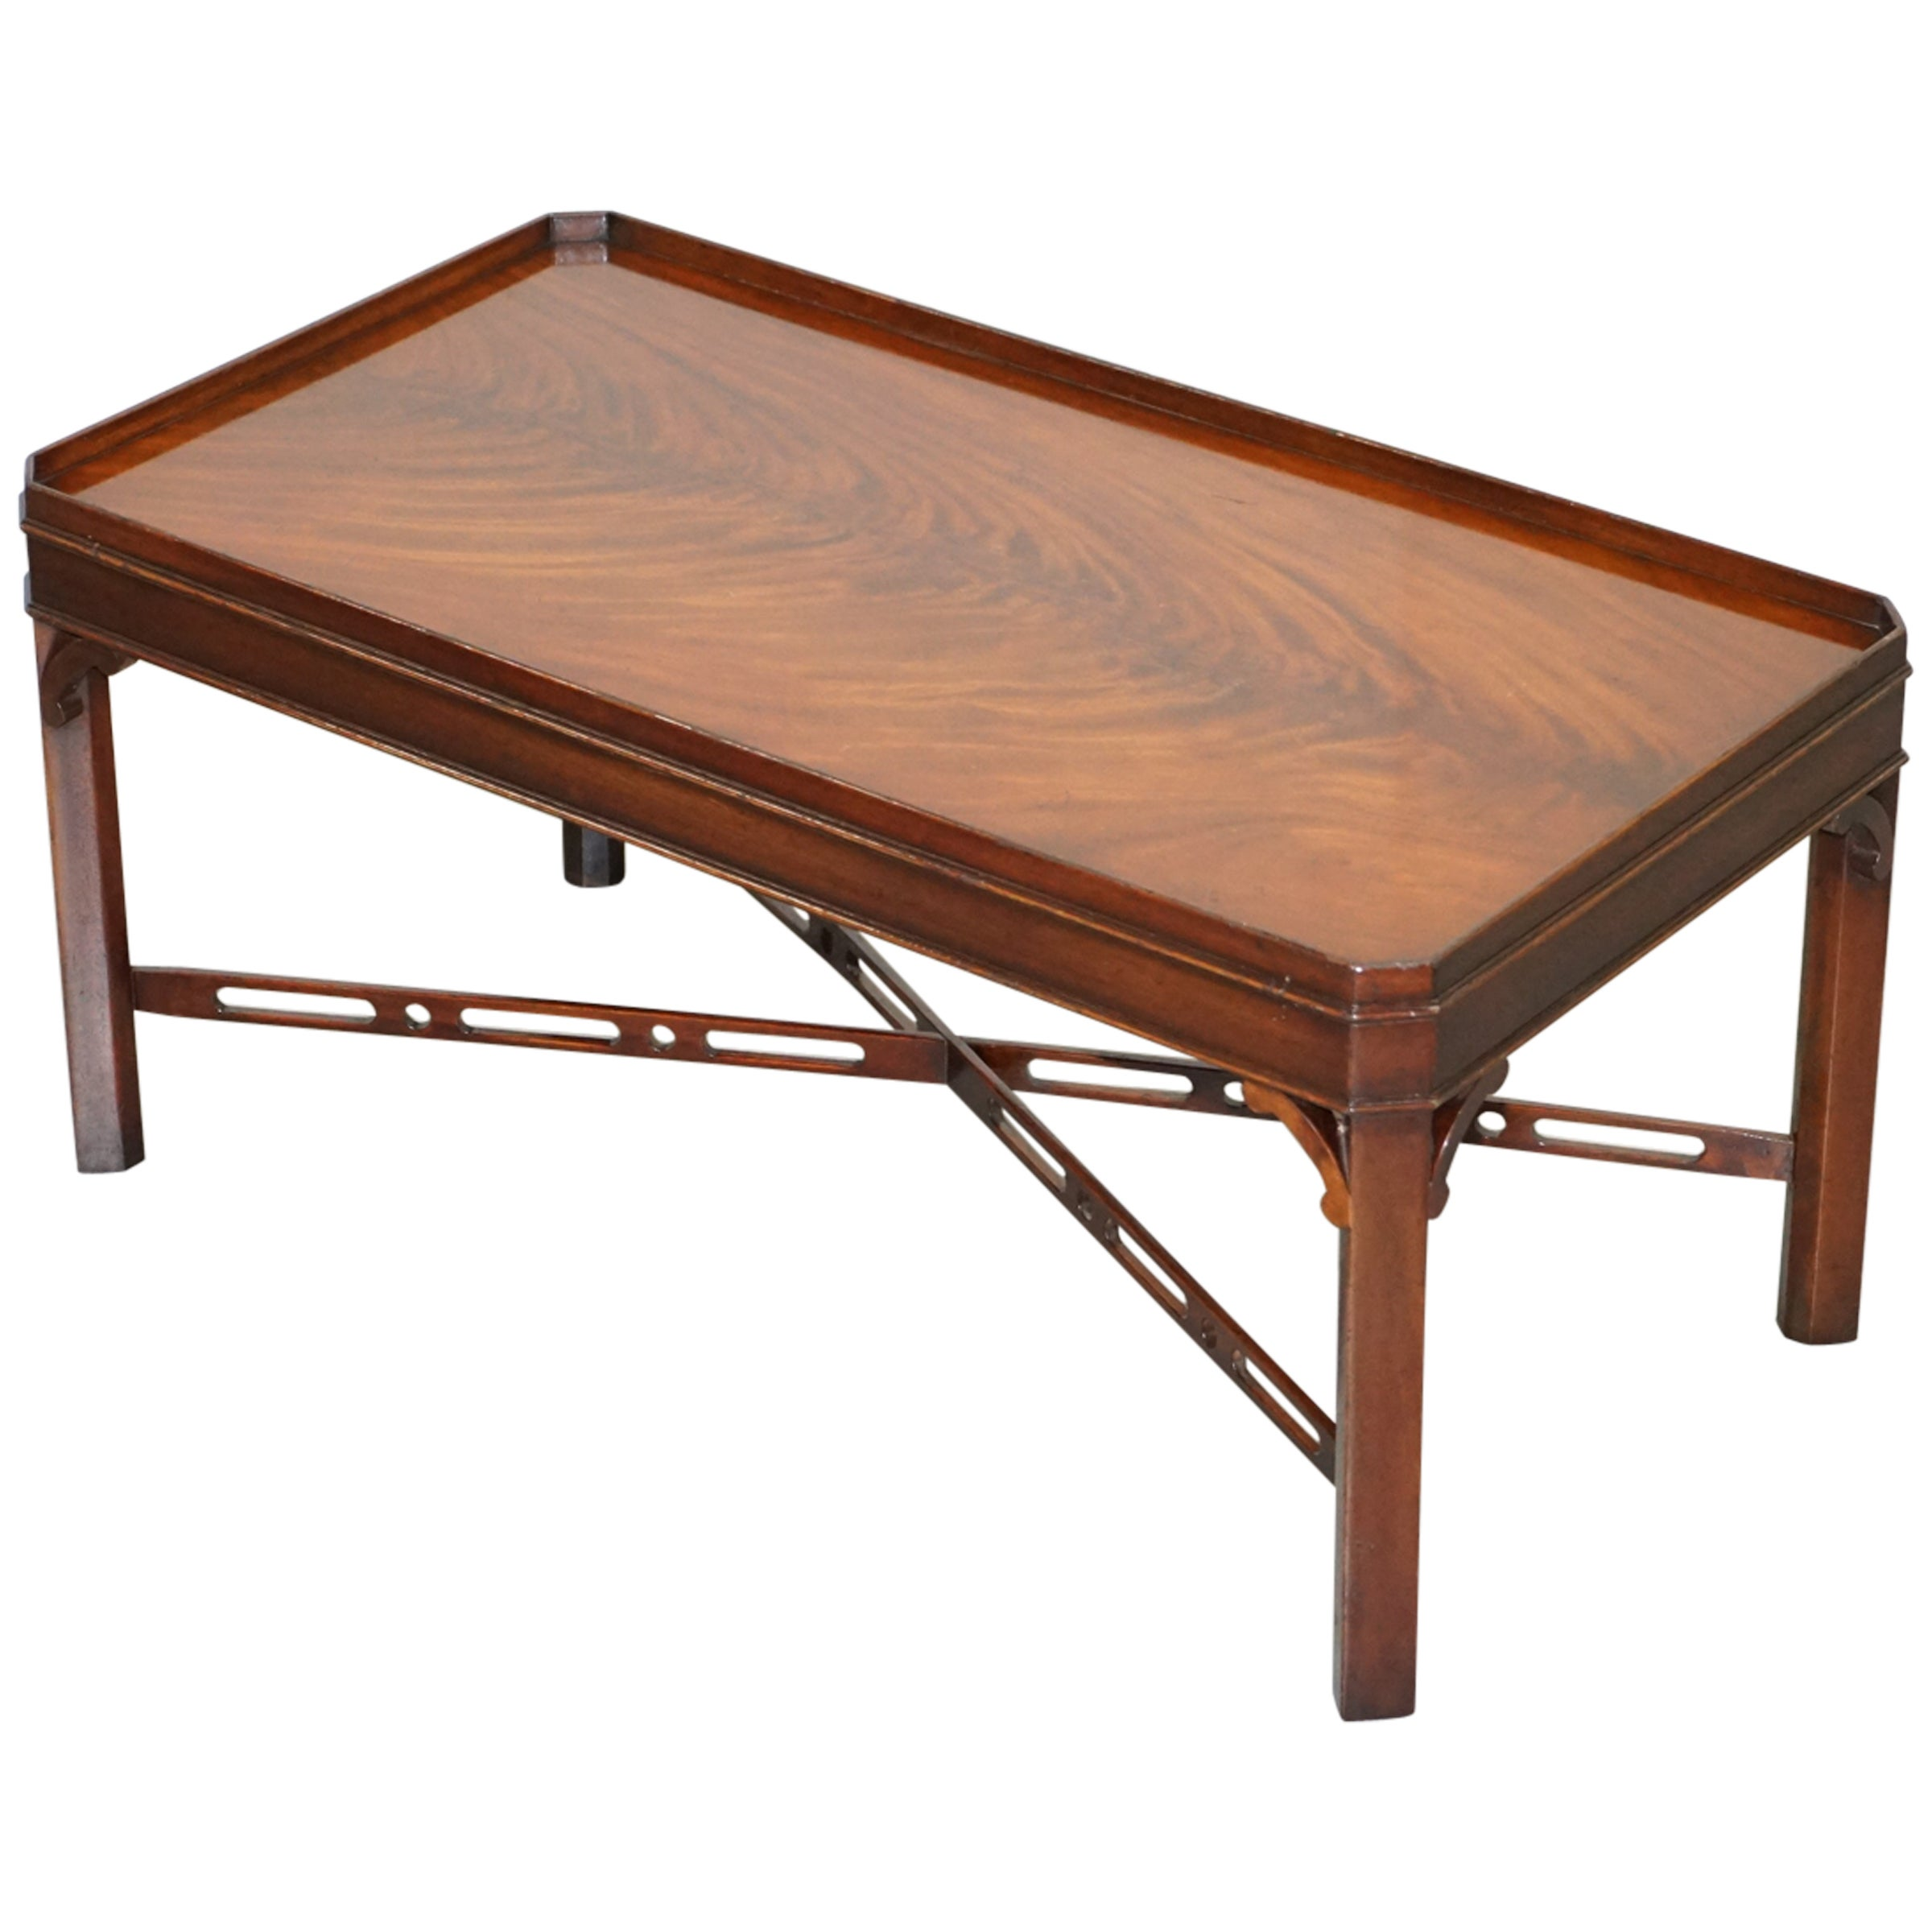 Stunning Flamed Mahogany Coffee or Cocktail Table Fret Work Carved Stretchers